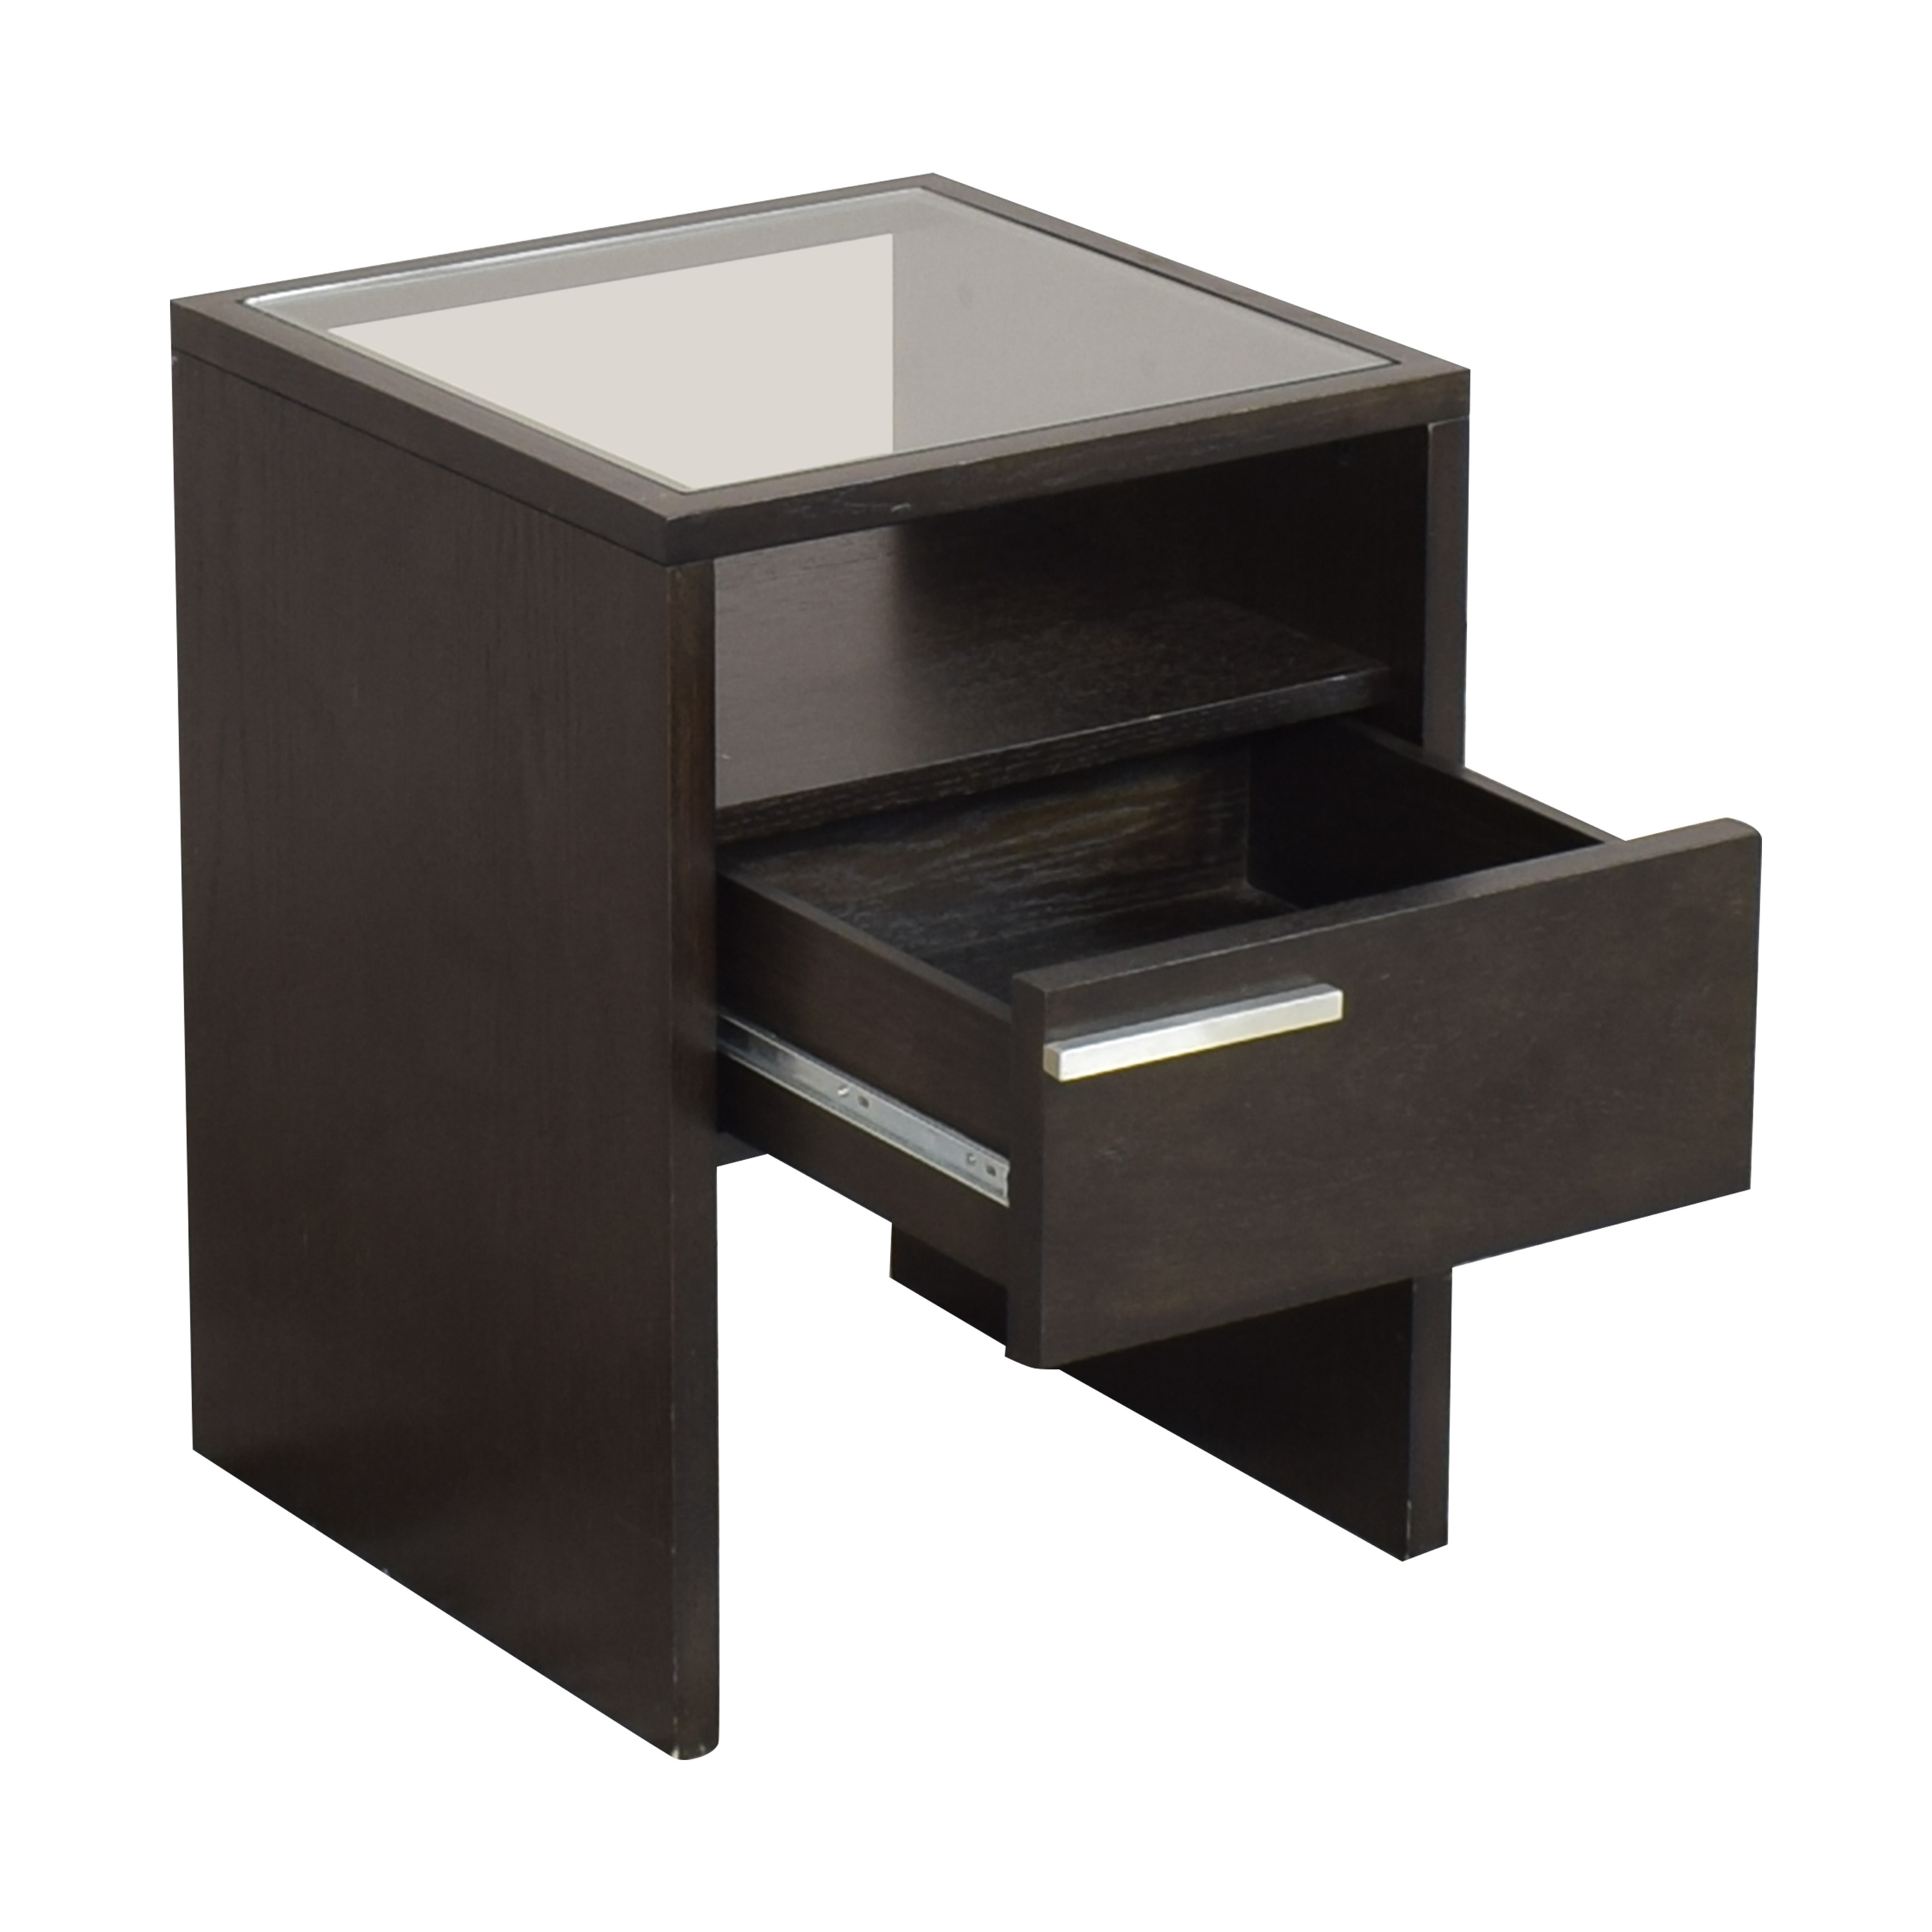 West Elm West Elm Nightstand with Transparent Surface discount